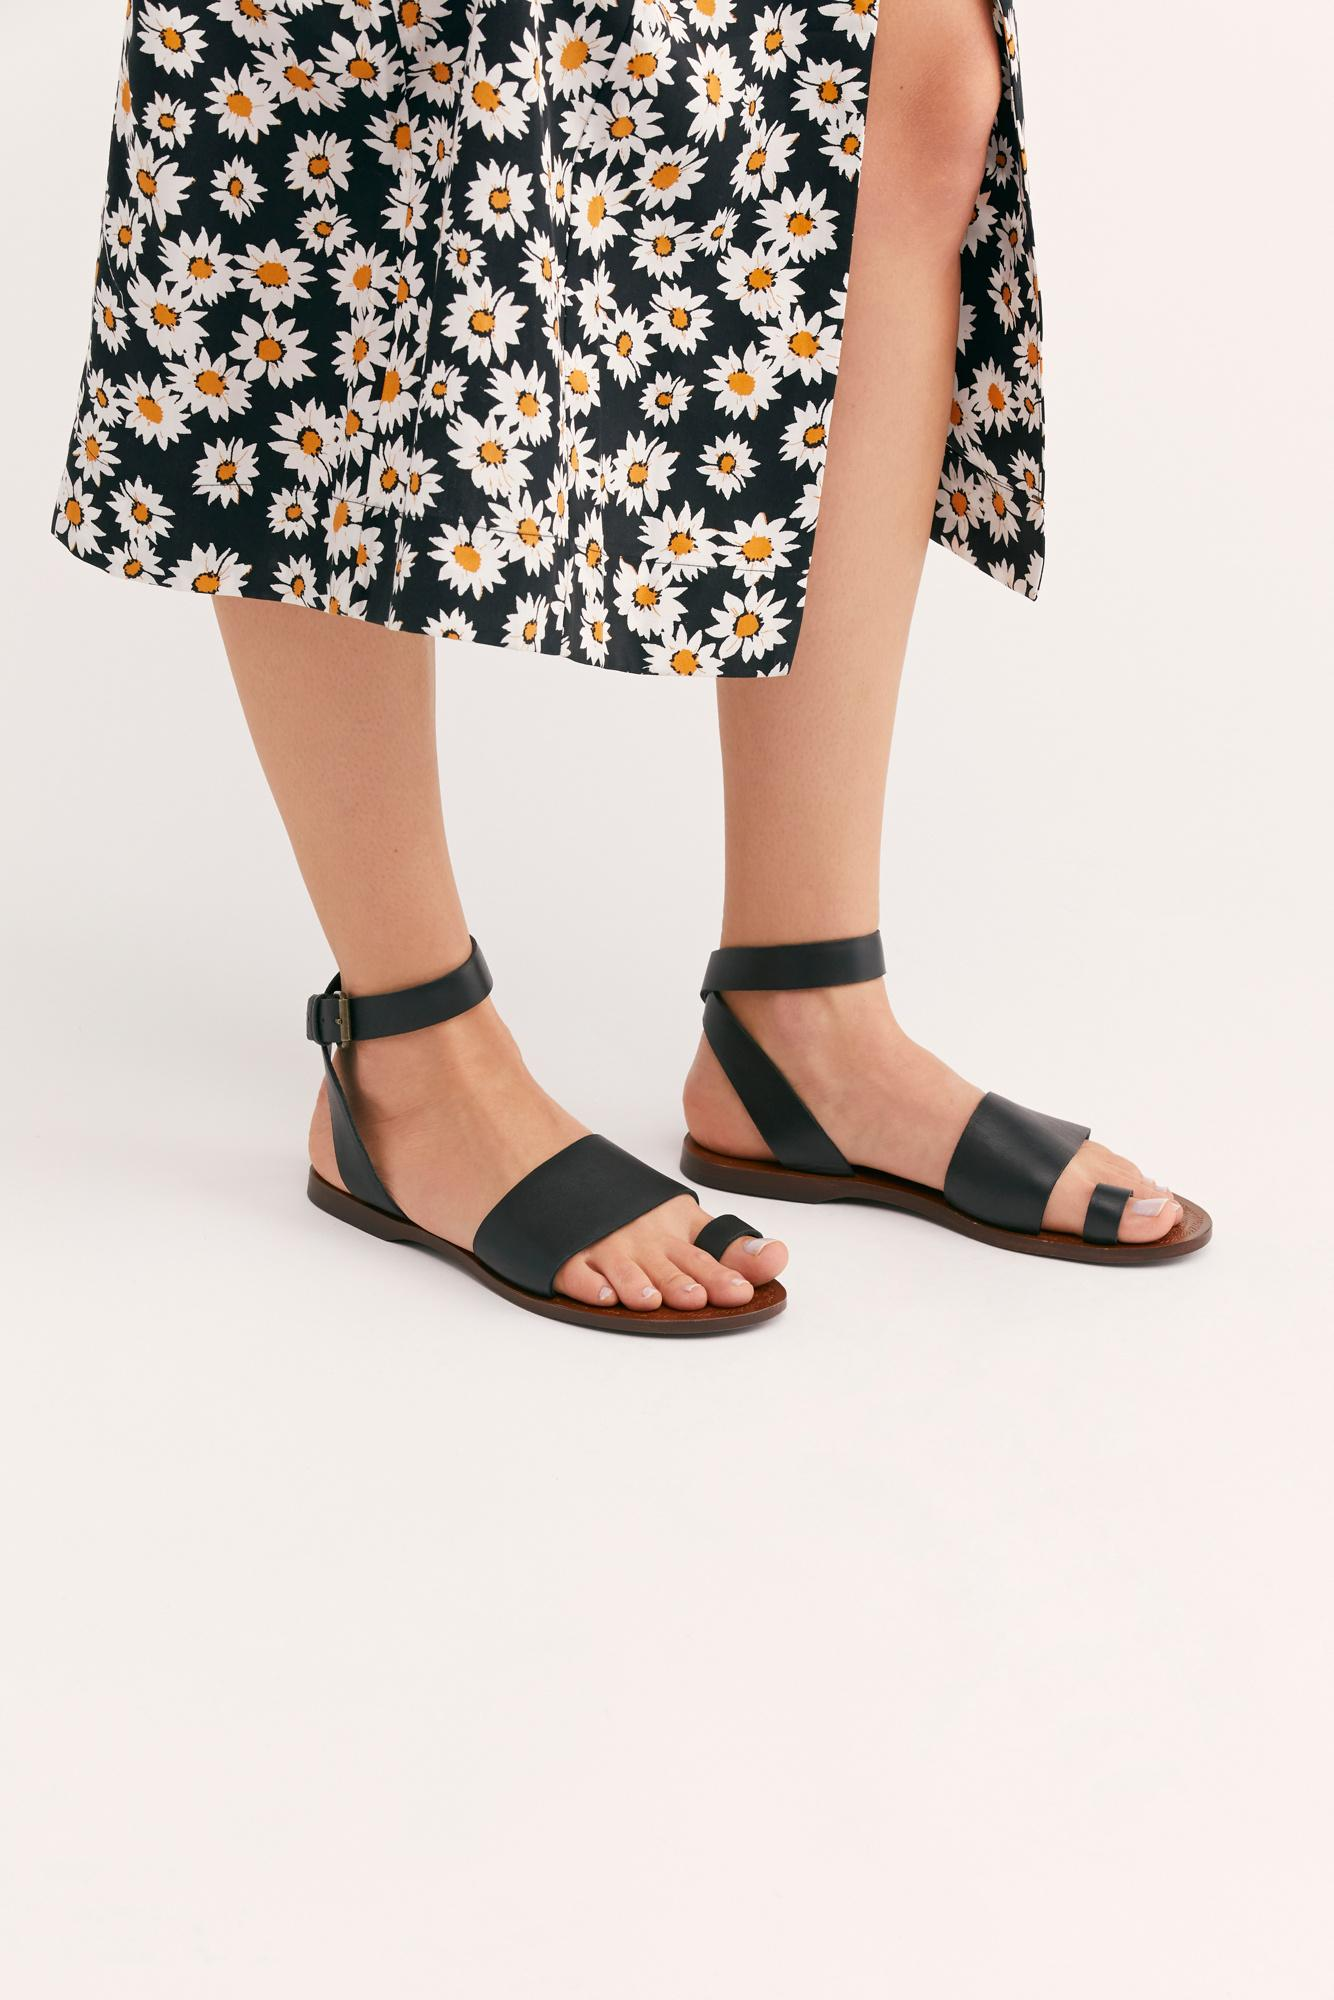 d15287d9274 Free People - Black Torrence Flat Sandal By Fp Collection - Lyst. View  fullscreen